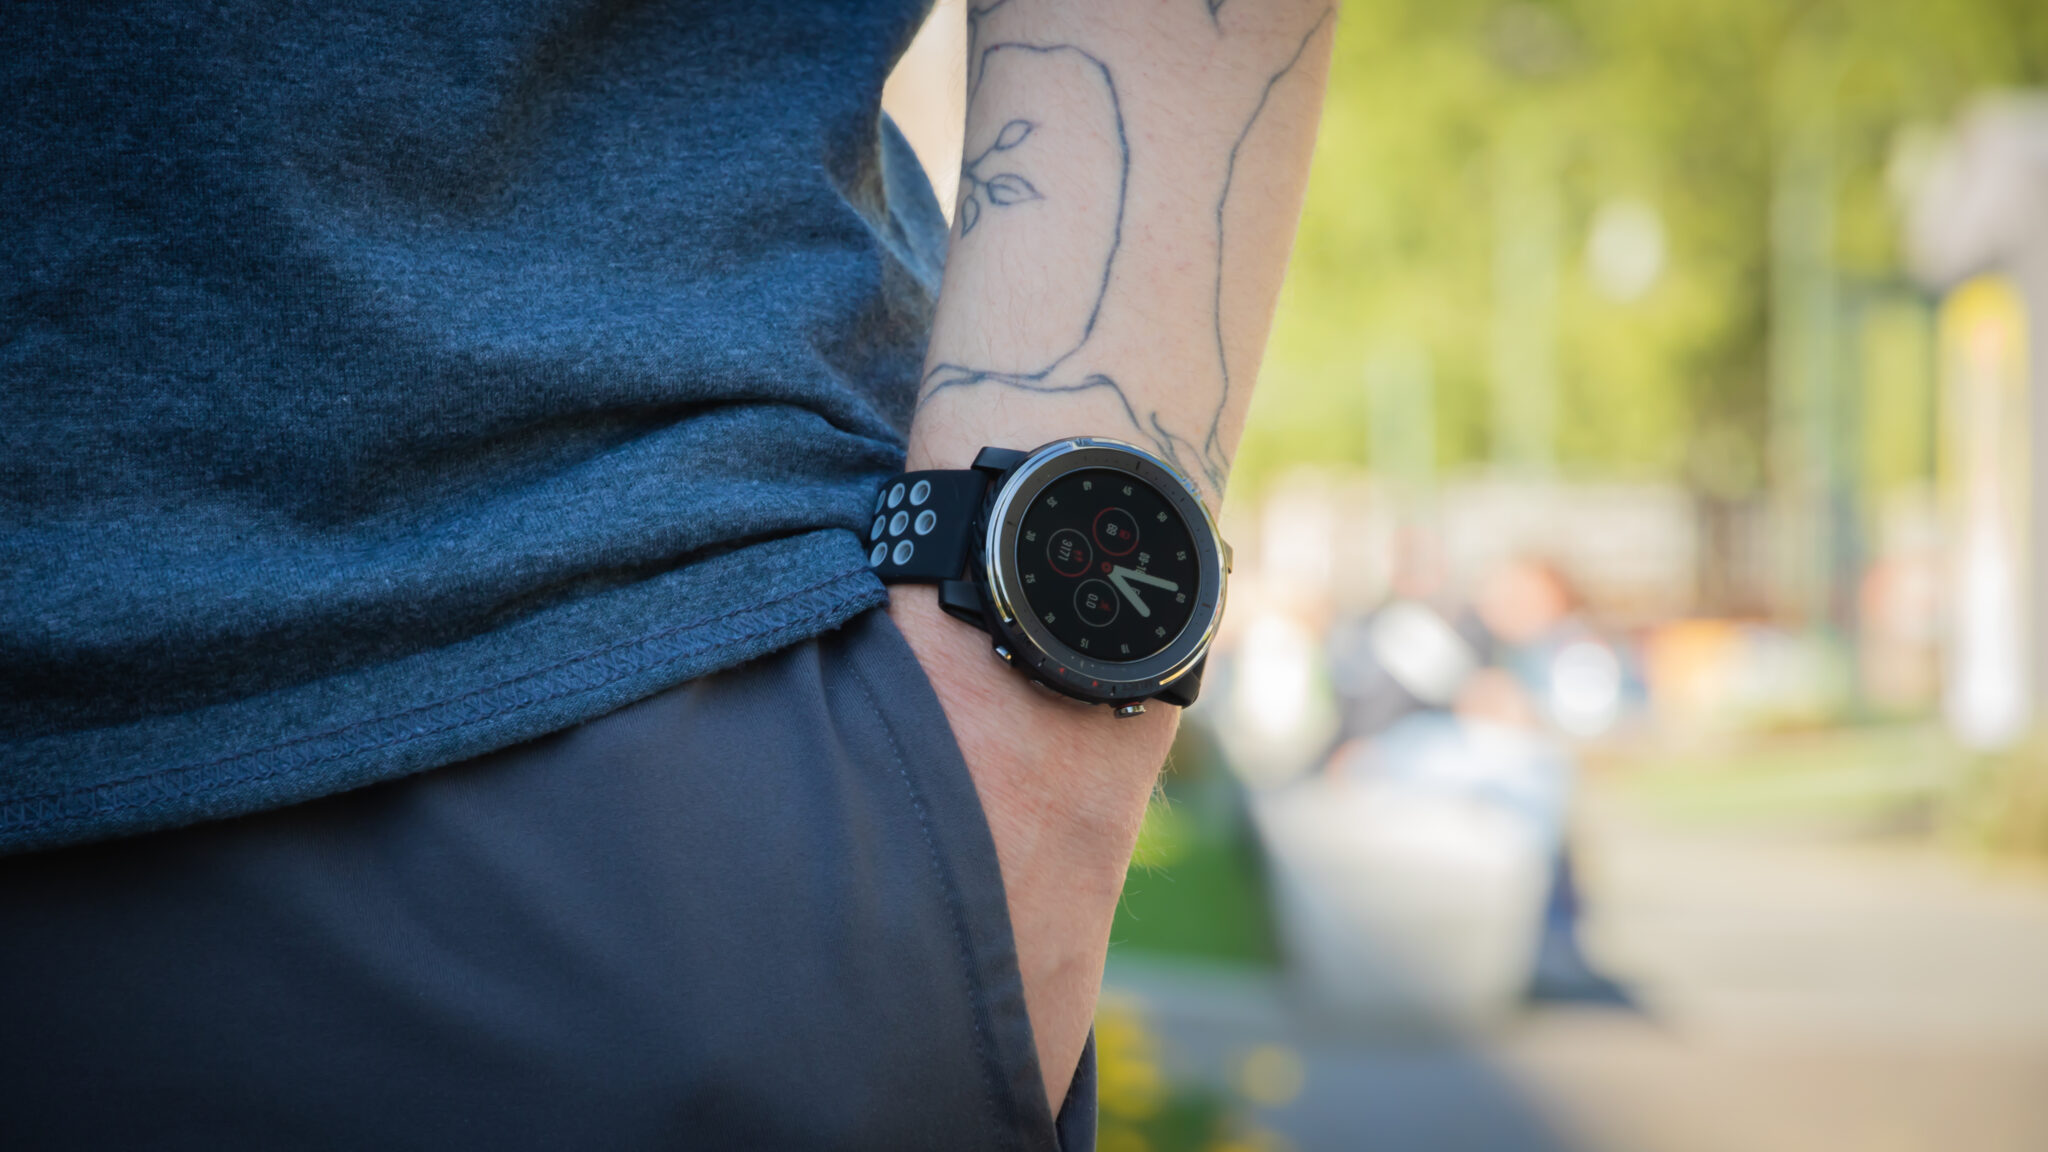 Amazfit Stratos 3: Smartwatch für Sportler mit cleveren Features